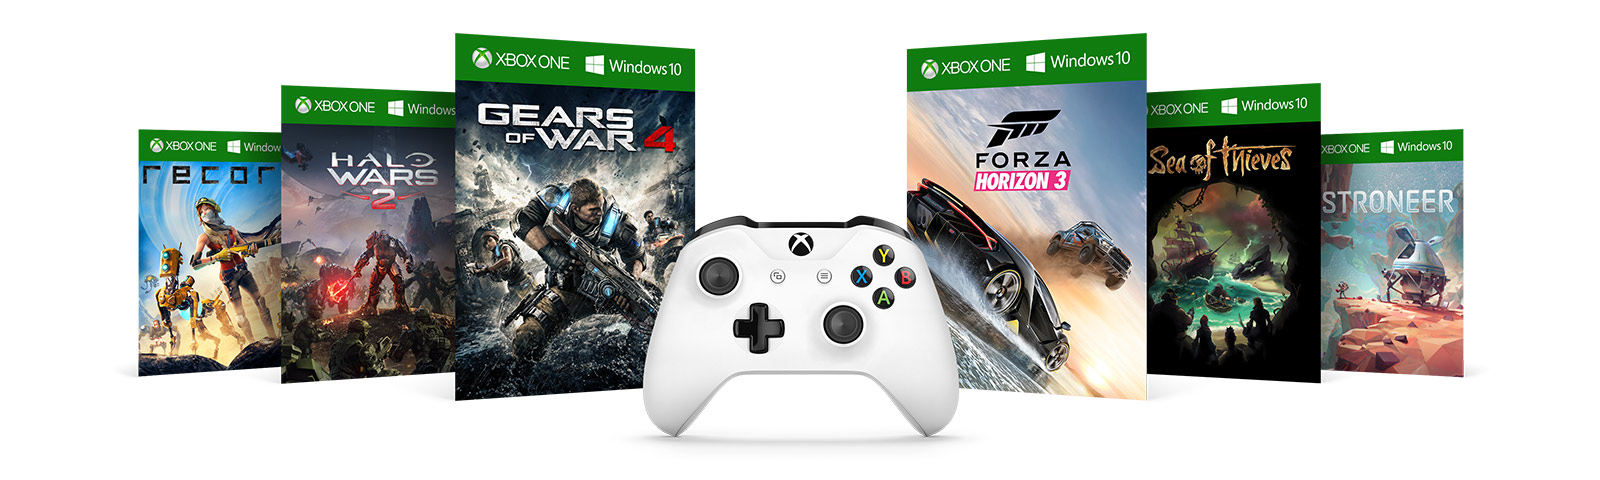 Xbox play anywhere games